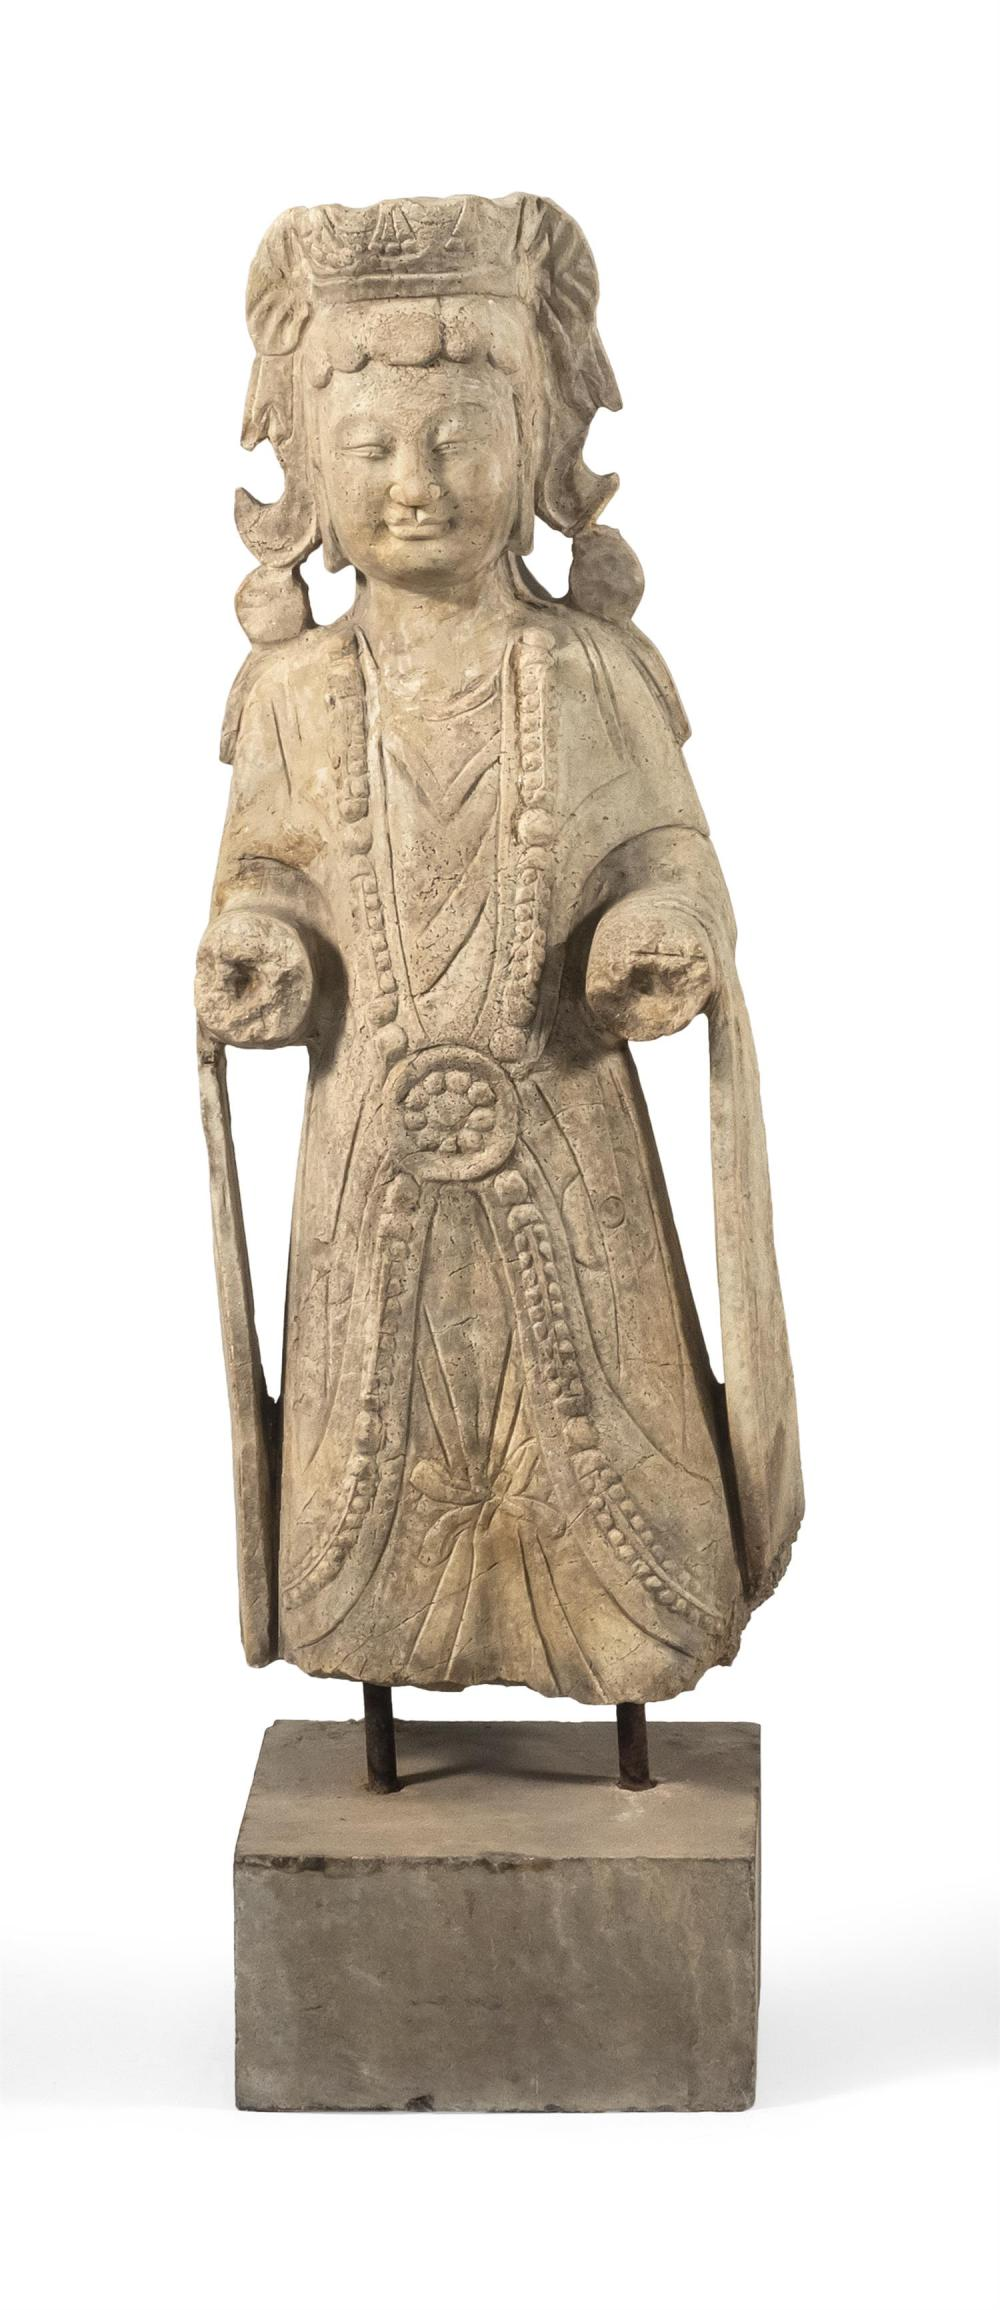 "CHINESE SANDSTONE FIGURE Standing, wearing a jeweled necklace and flowing robes. Height 32""."